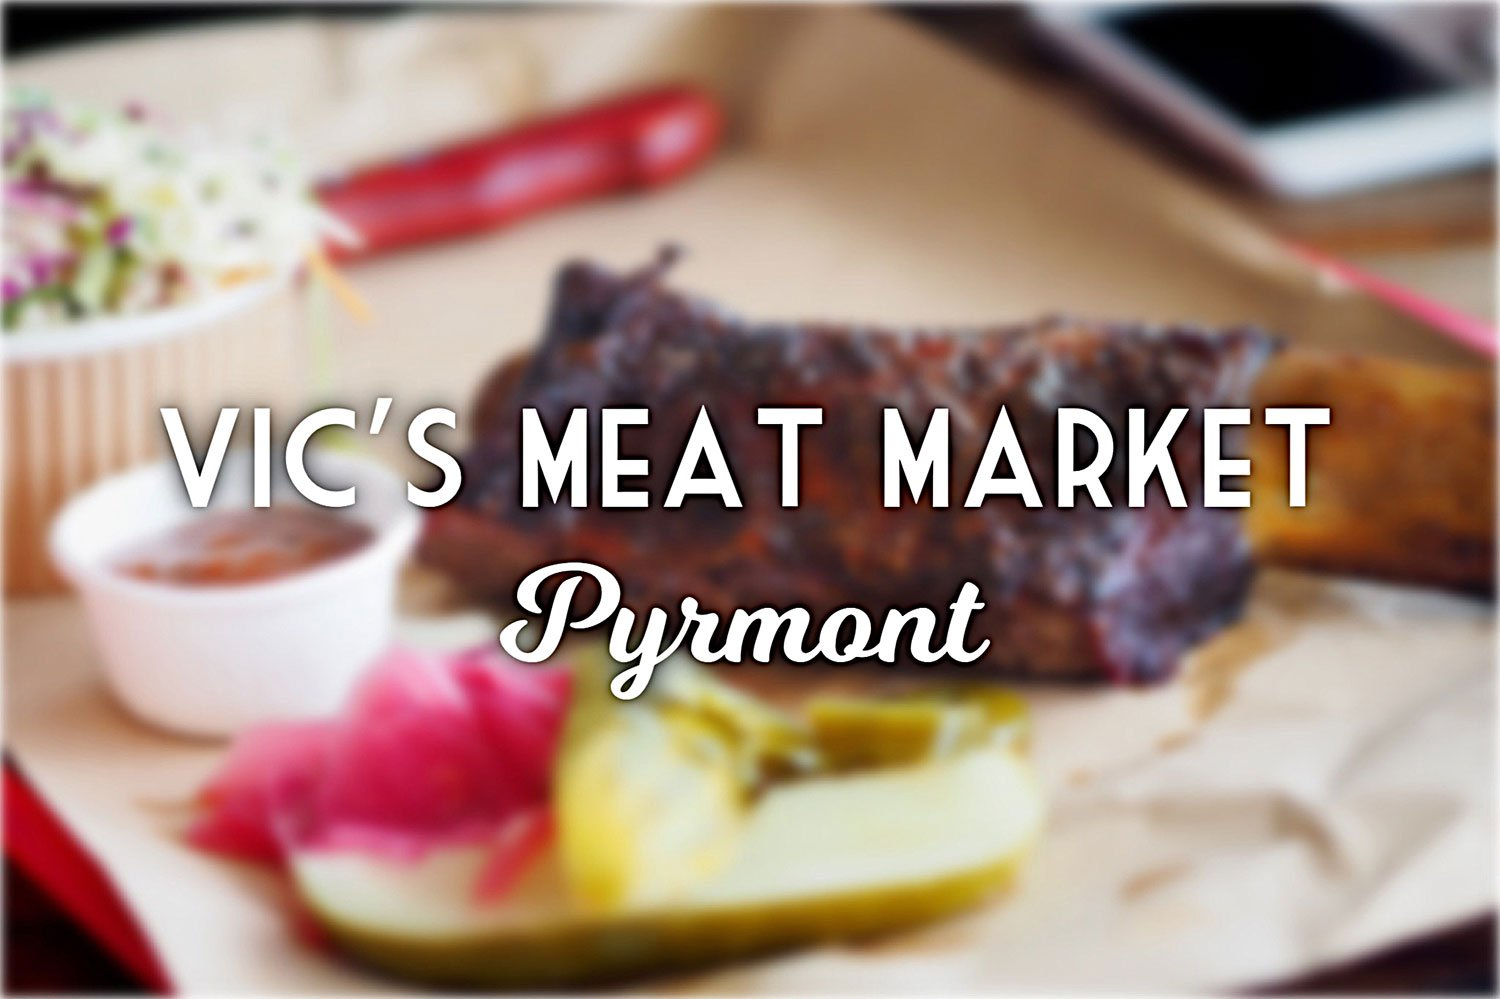 Sydney Food Blog Review of VIc's Meat Markets, Pyrmont